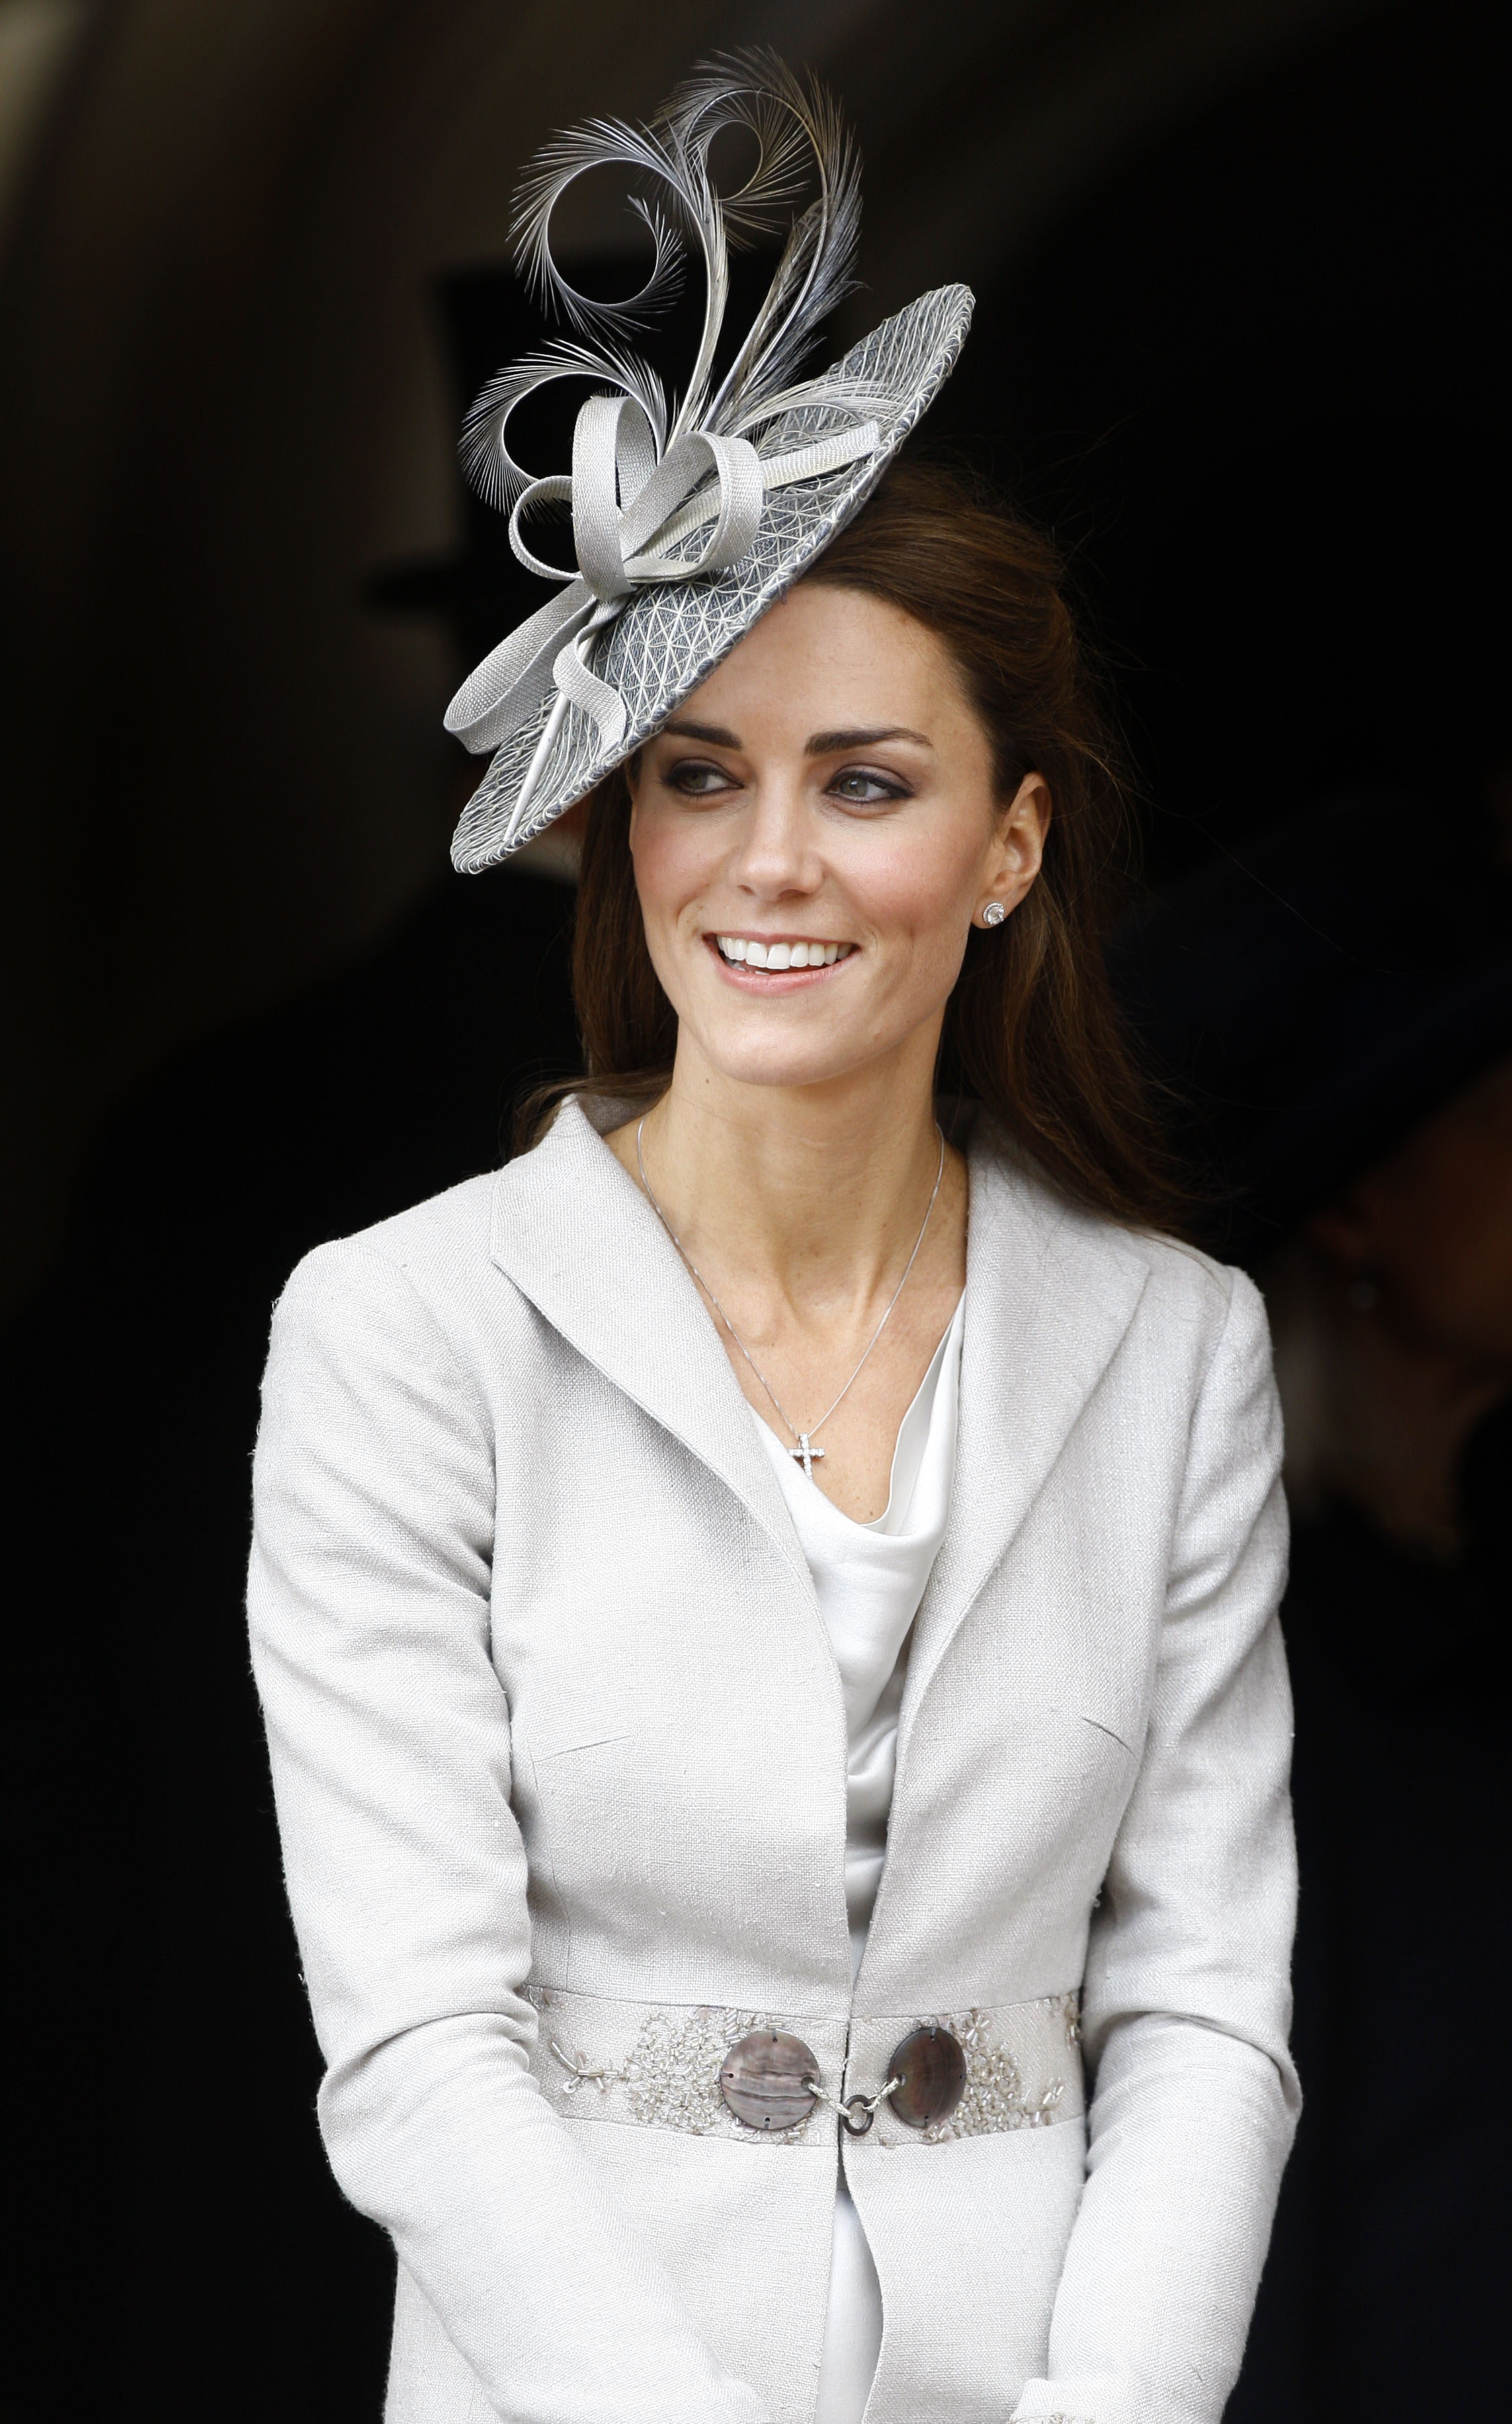 <strong>Princess in Profile</strong>                                   In Windsor, Middleton watched the Garter Service in a gray suit and fascinator. June 13, 2011.